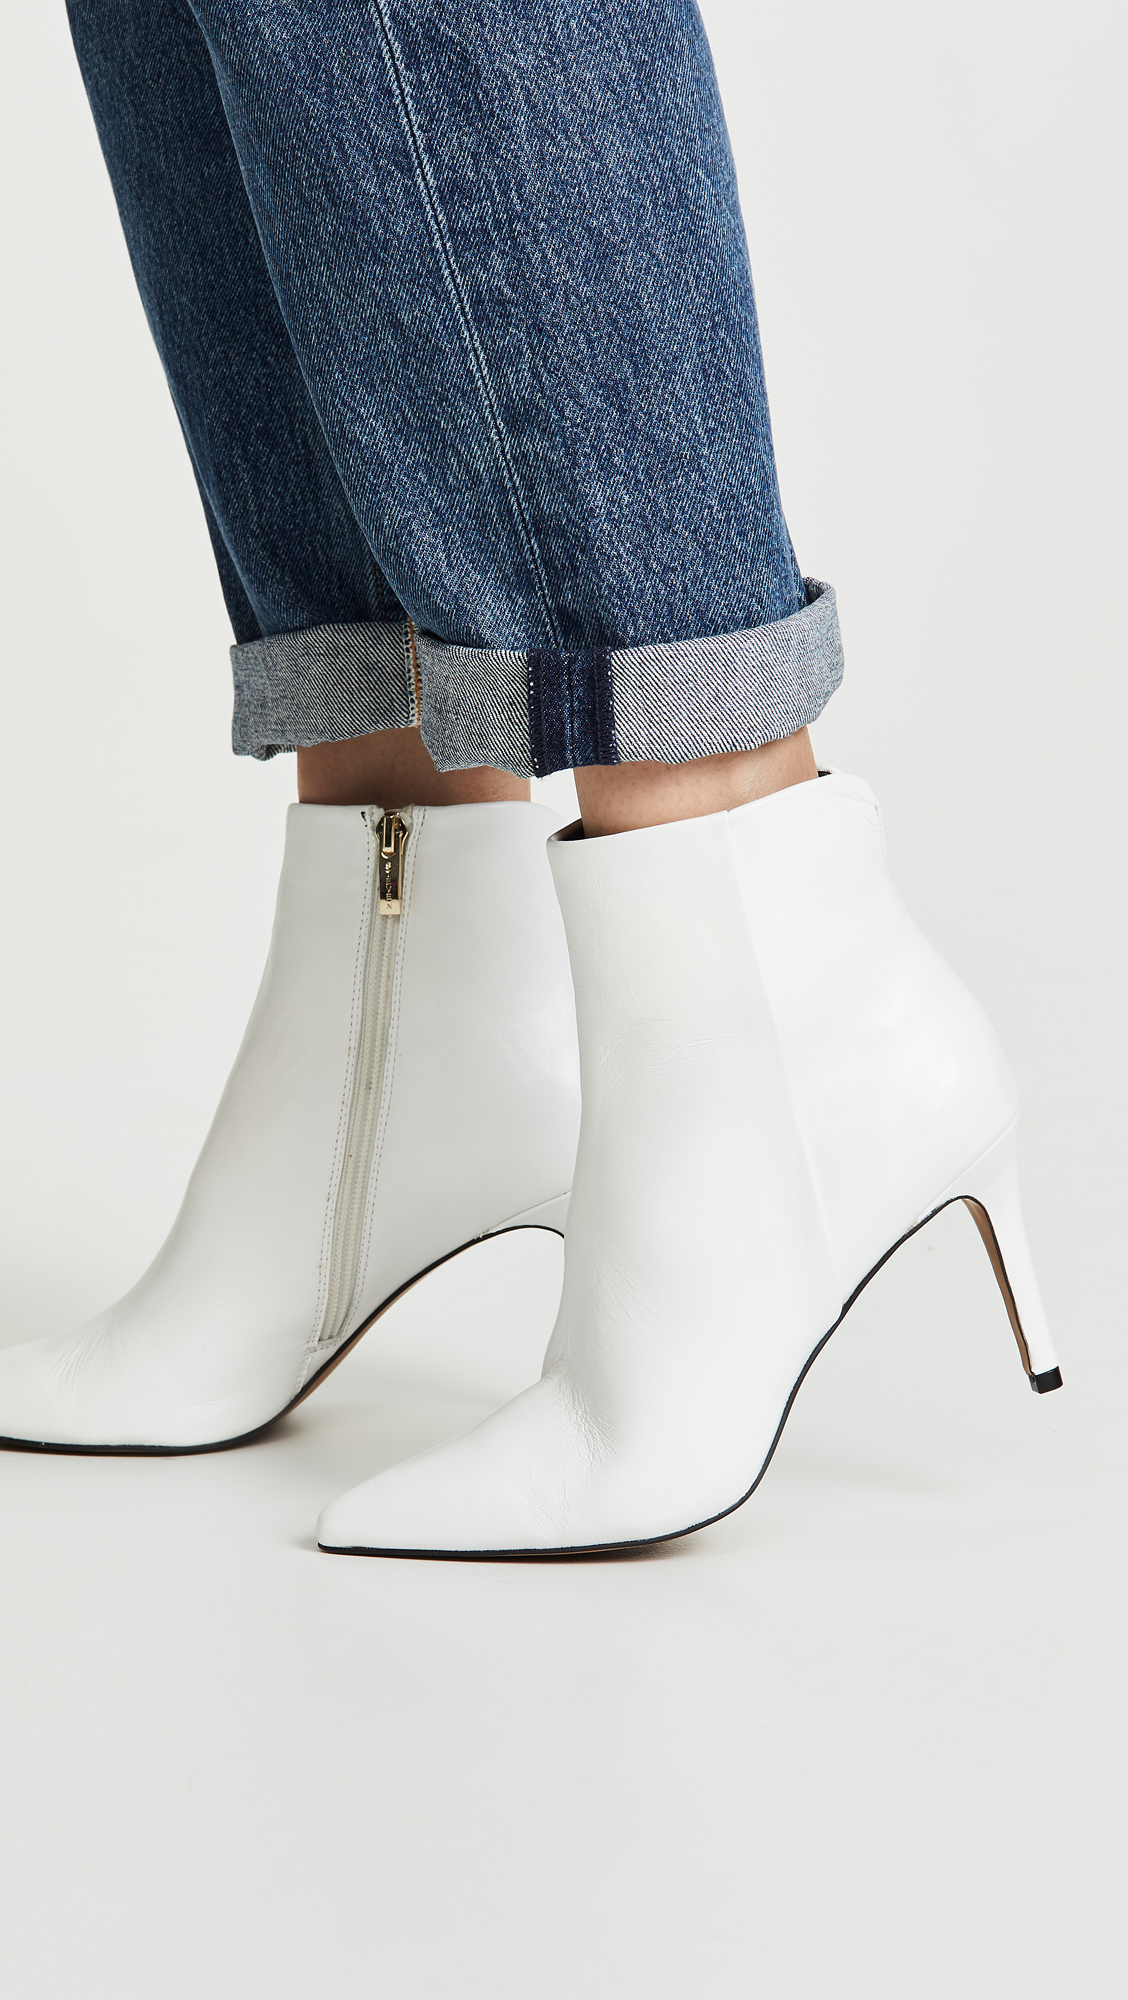 6d58446a9d7 Steven Leila Pointed Toe Booties